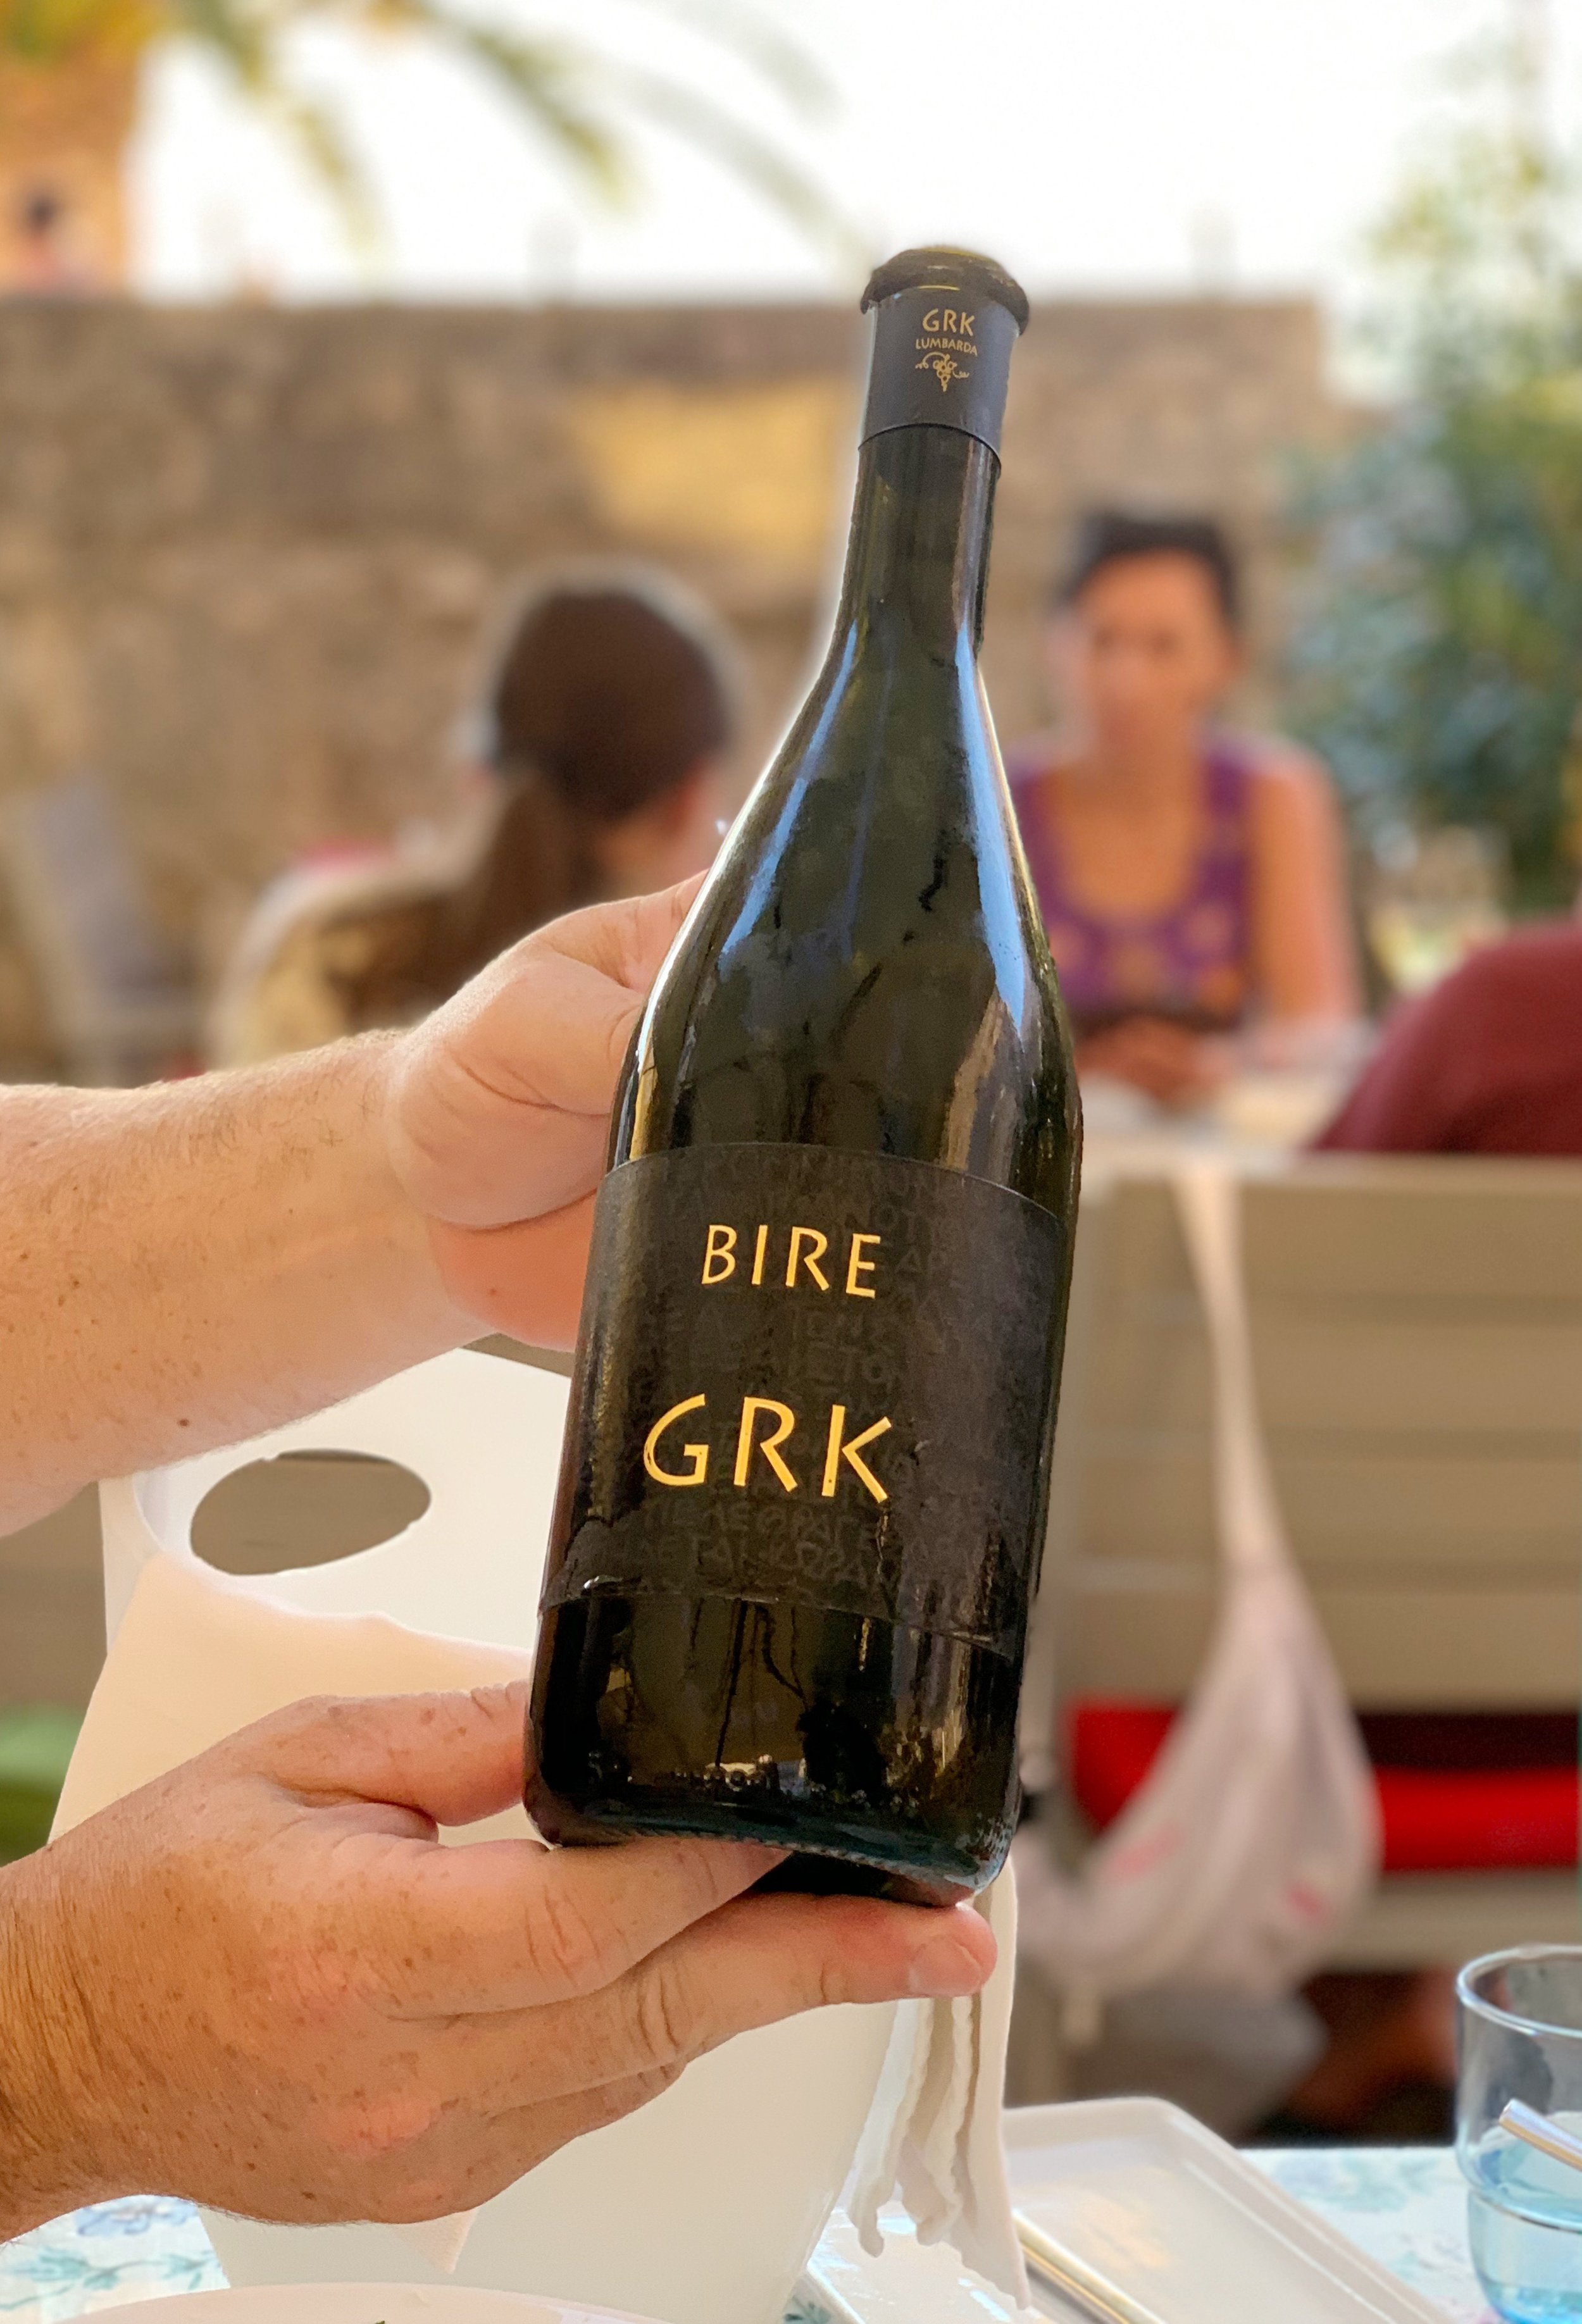 Grk wine, made from grapes grown only in Lumbarda, Croatia. Bire was my favorite brand.